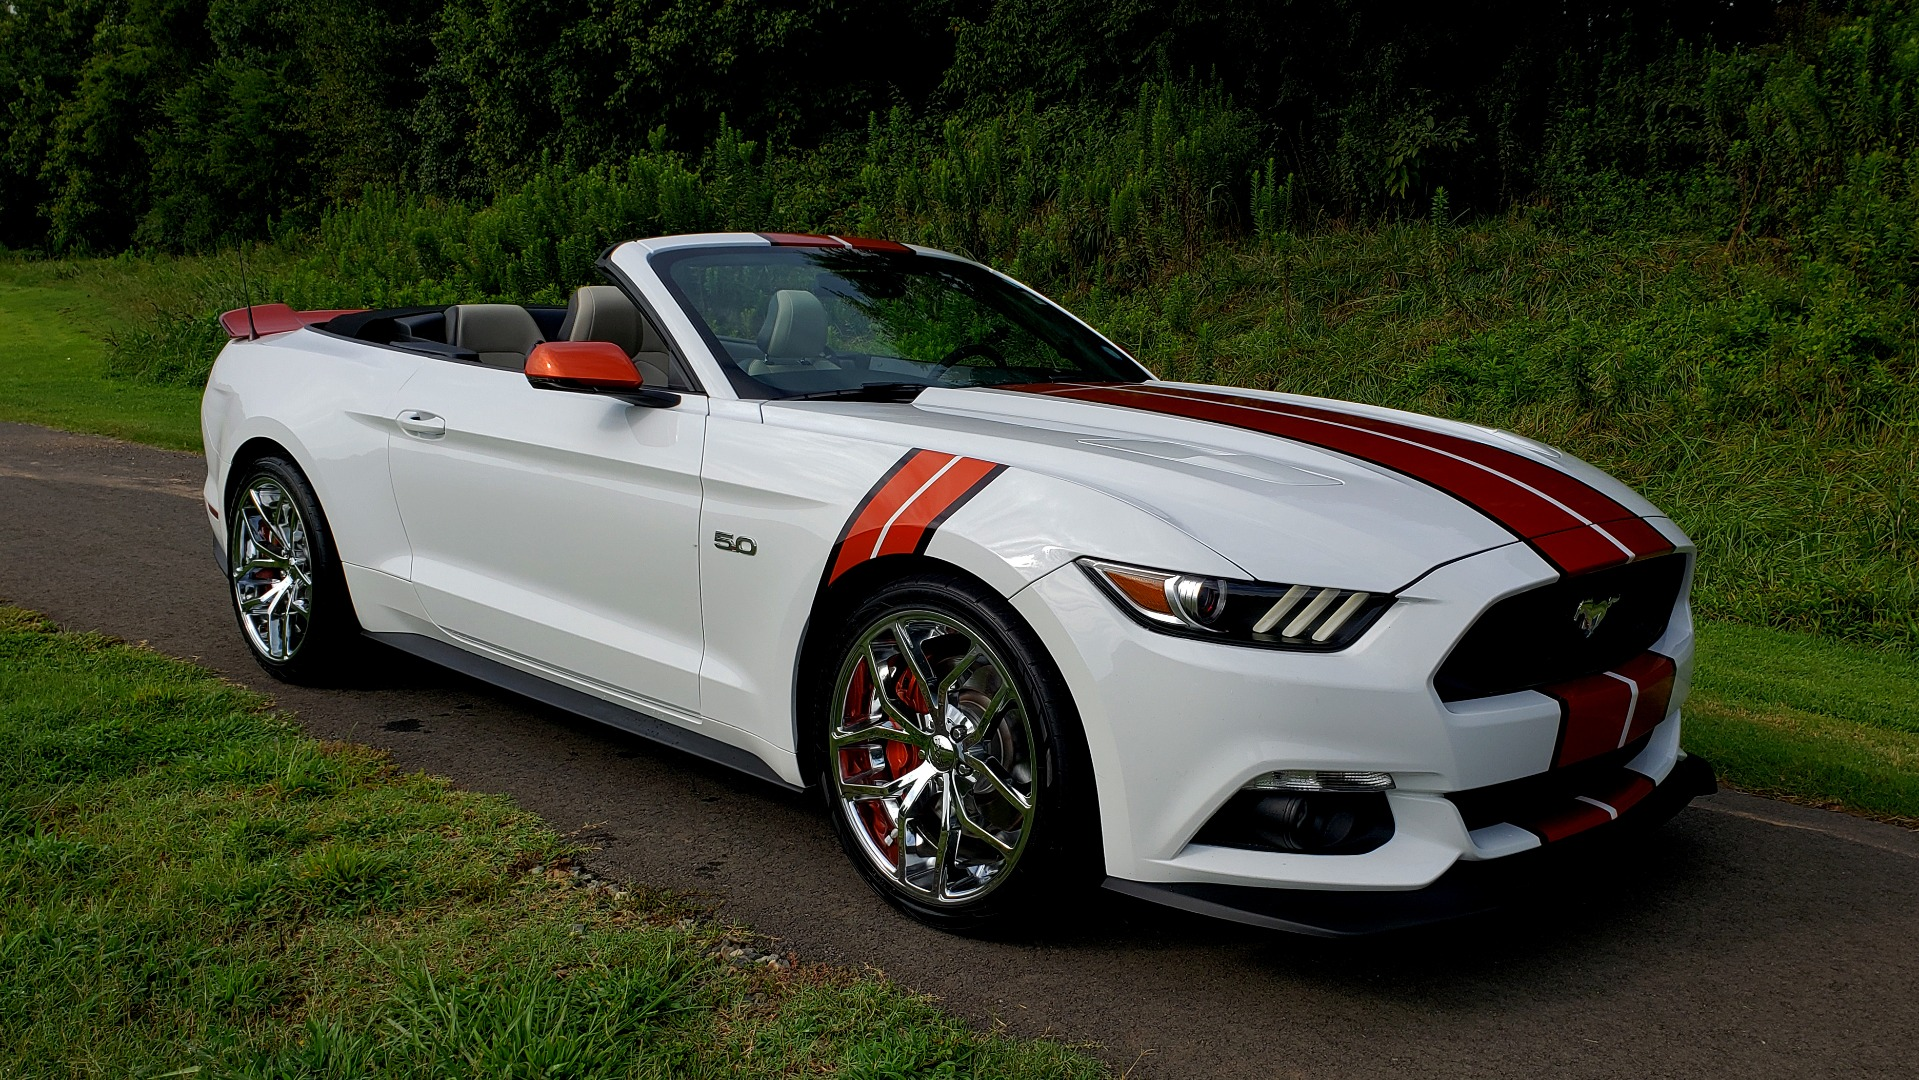 Used 2017 Ford MUSTANG GT PREMIUM CONV / 5.0L V8 / 6-SPD AUTO / NAV / HTD STS / REARVIEW for sale Sold at Formula Imports in Charlotte NC 28227 11